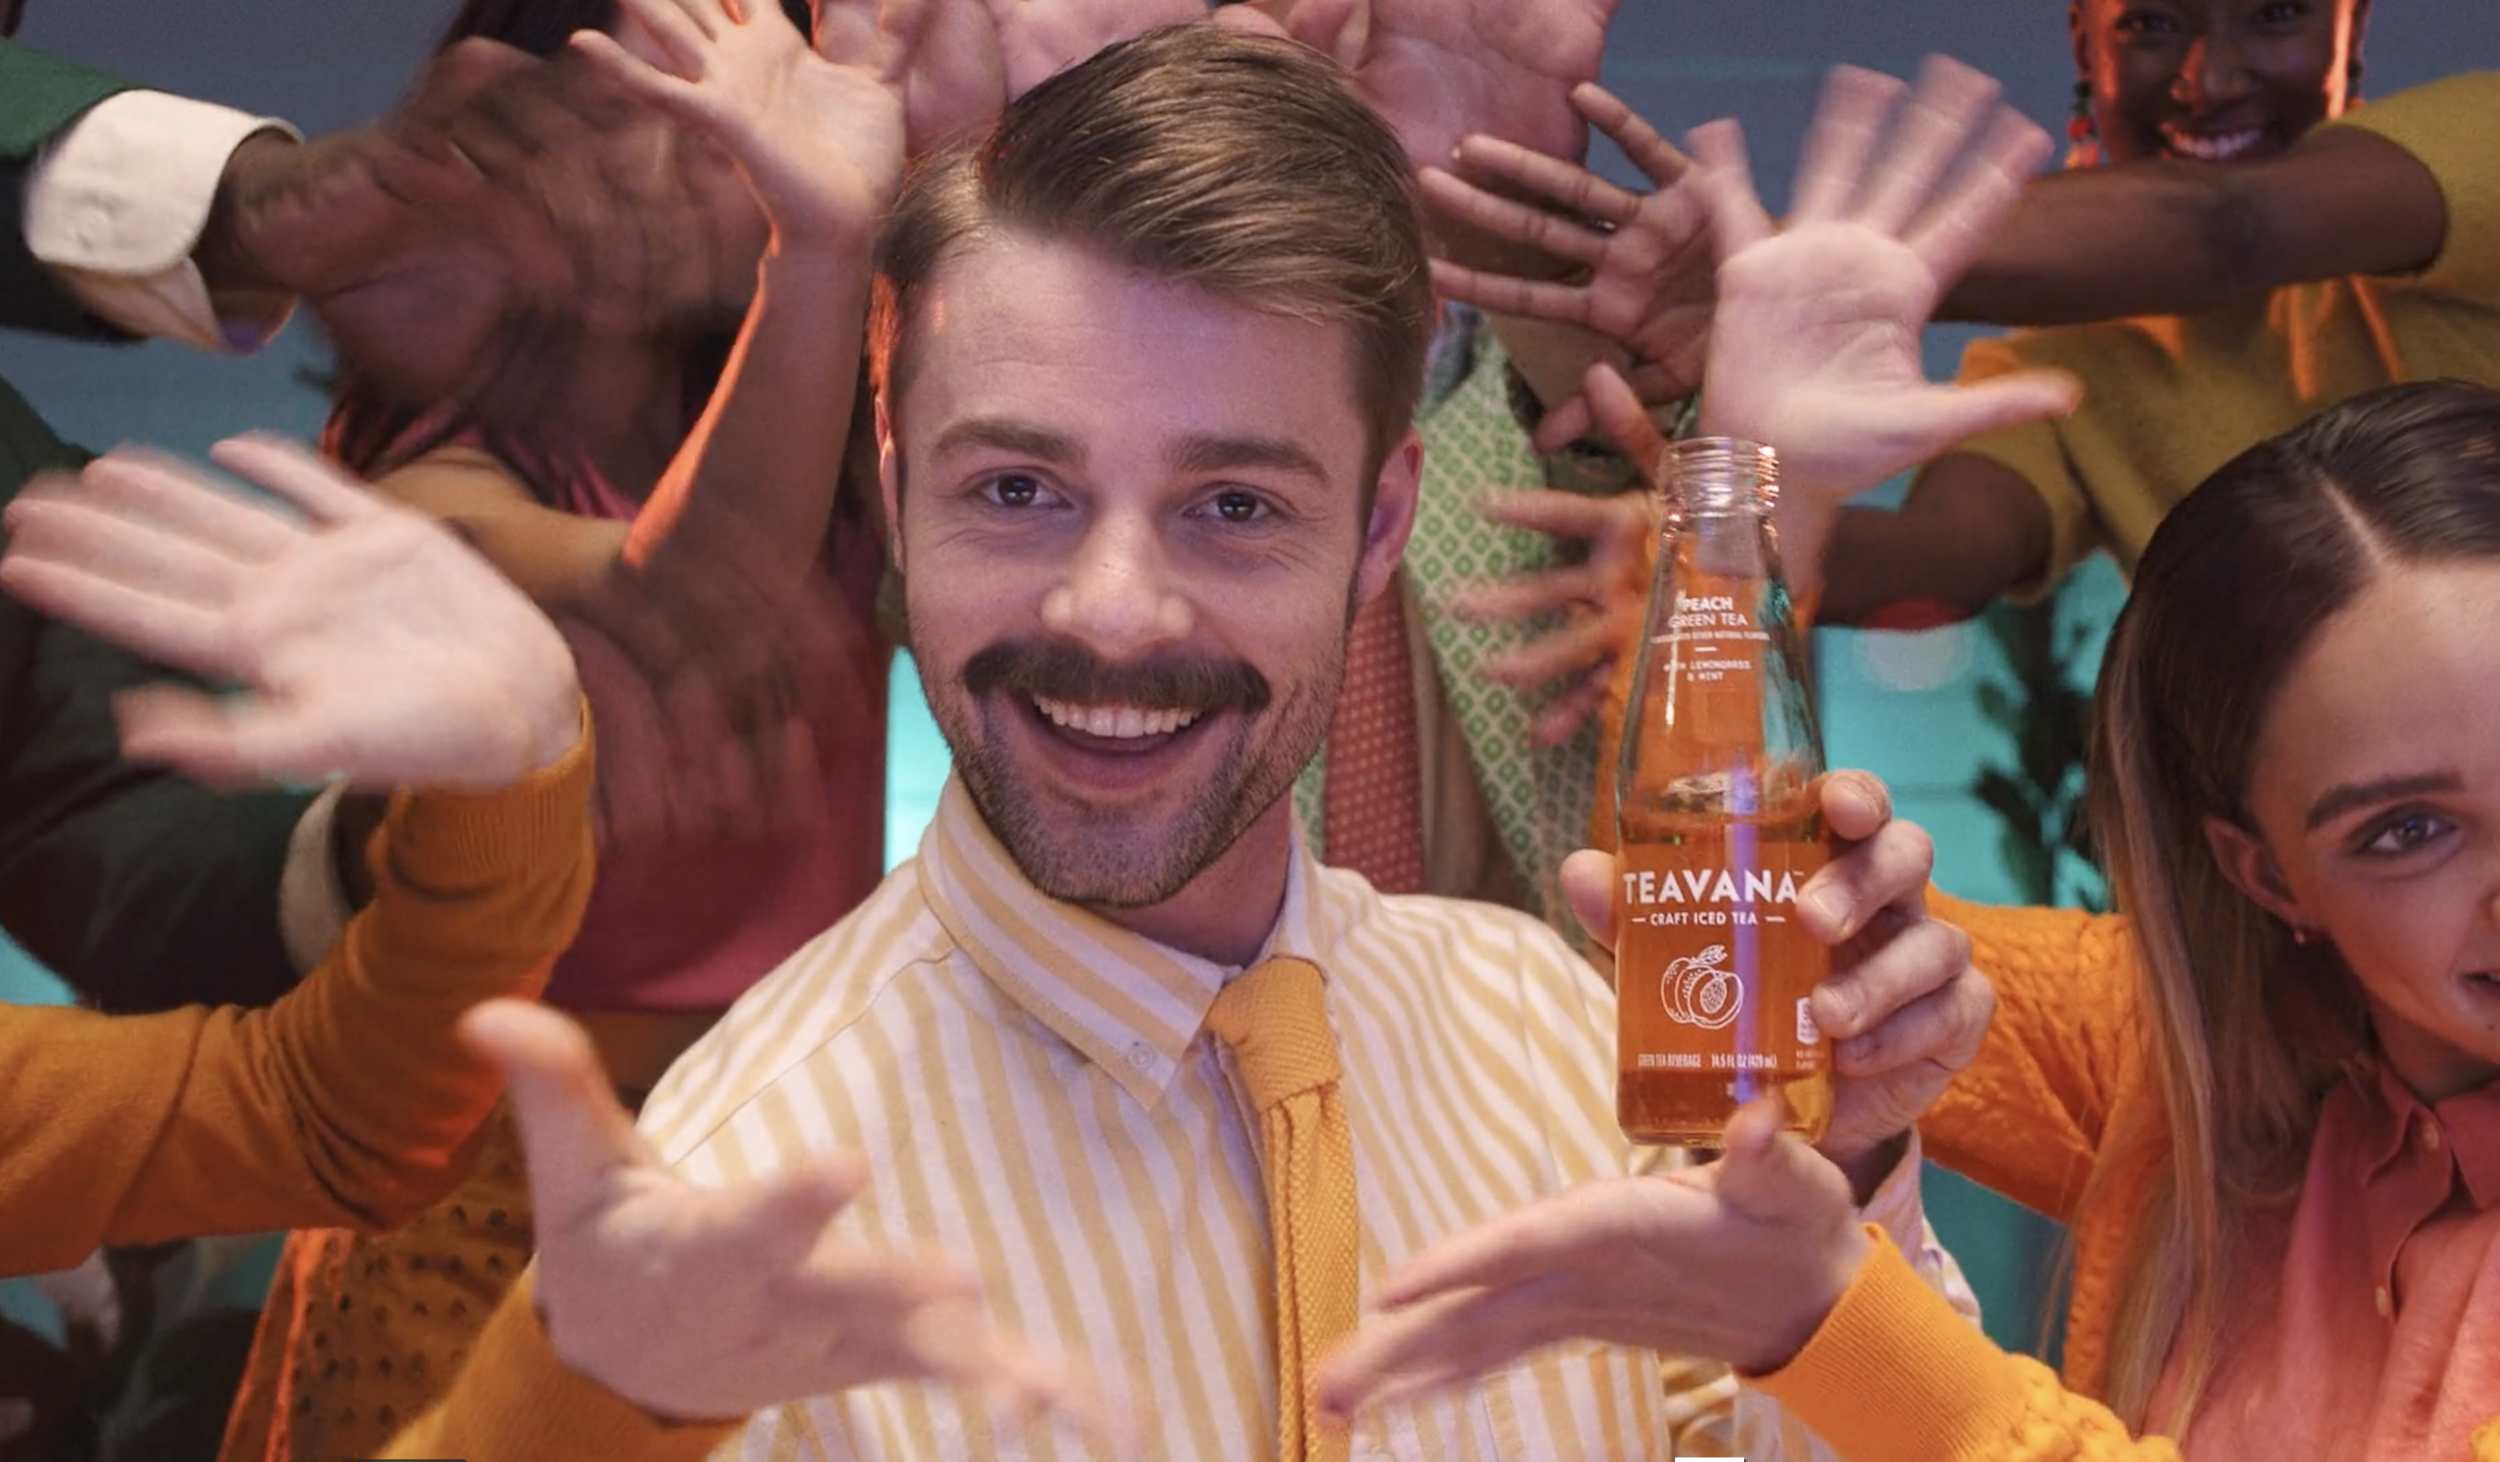 WORK IT! / TEAVANA - Directed by Jimmy Marble